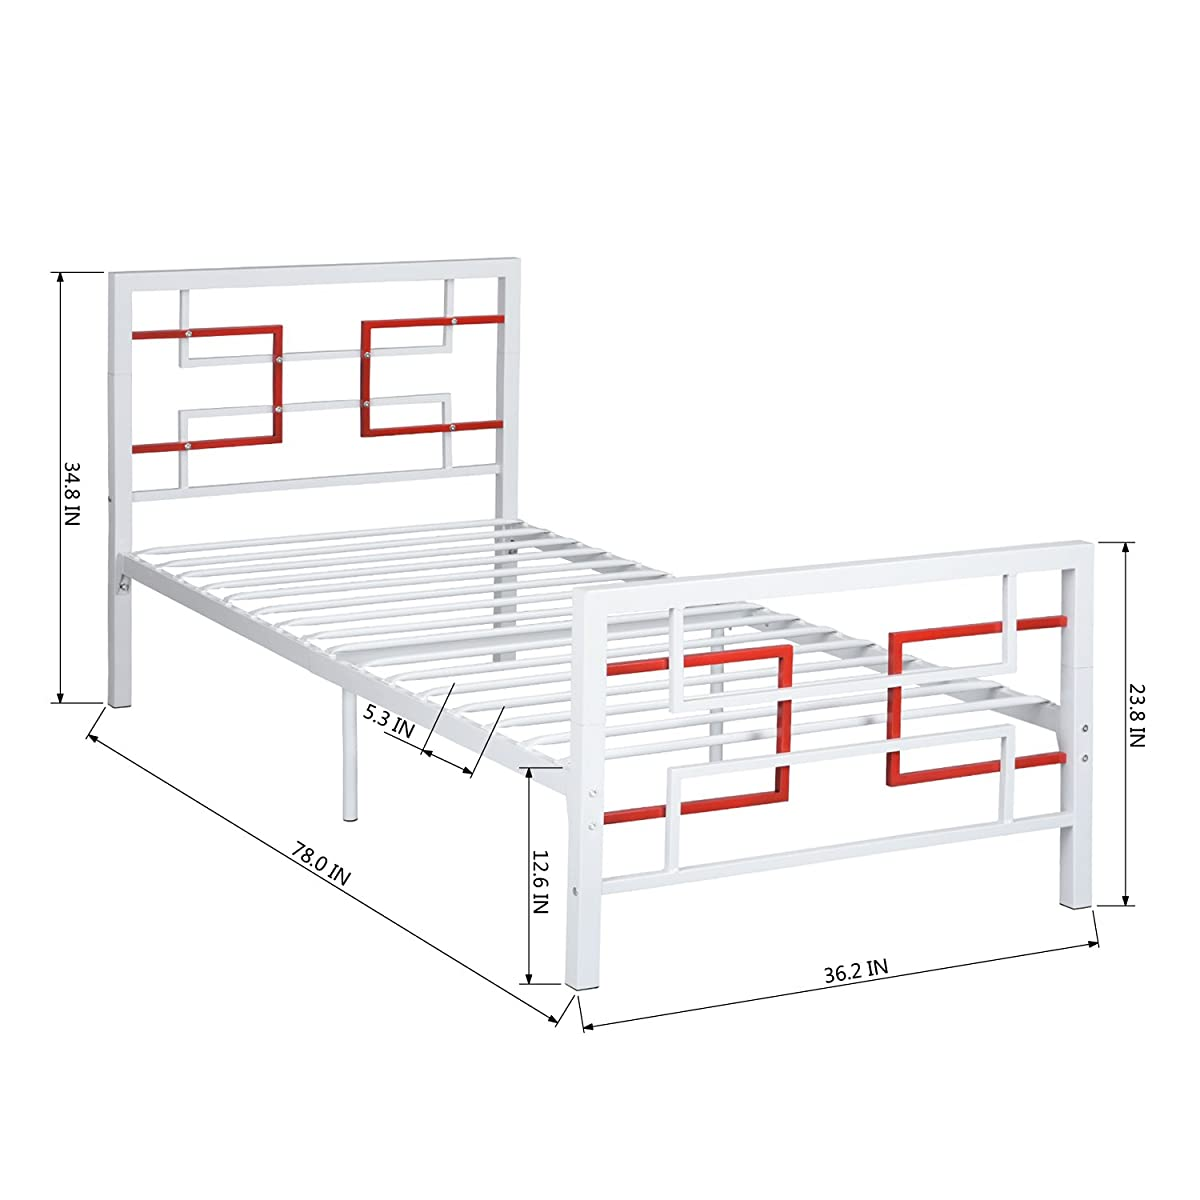 Green Forest Bed Frame Twin Size White, Metal Platform Mattress Foundation Box Spring Replacement with Headboard and Footboard